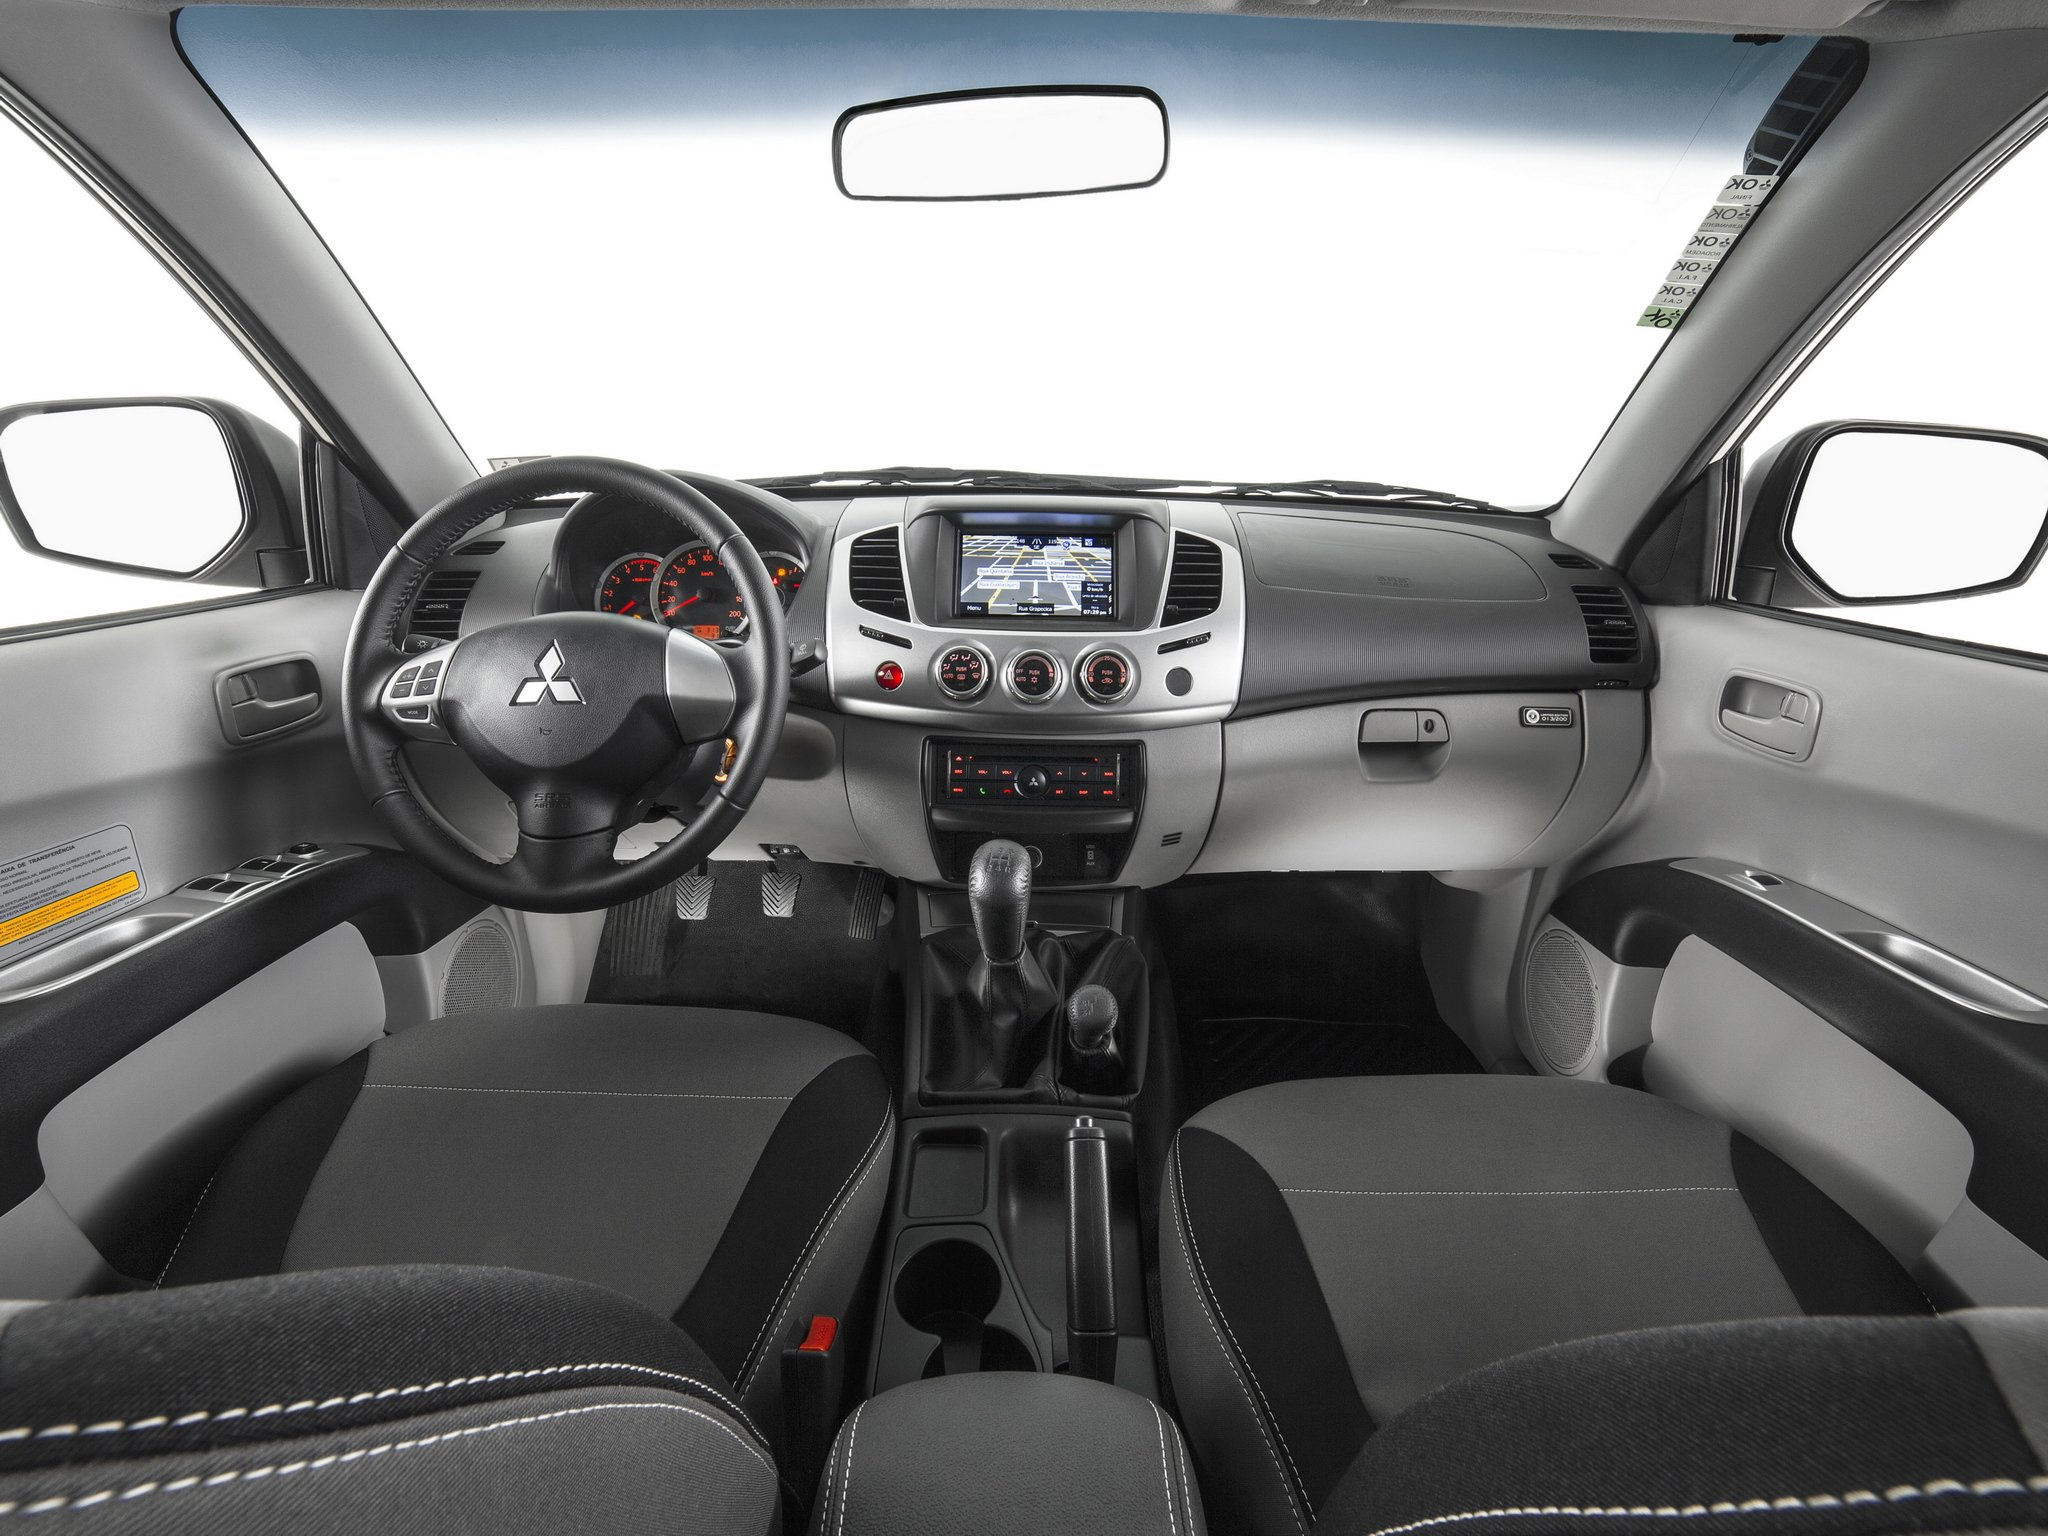 mitsubishi-l200-interior-wallpaper-6